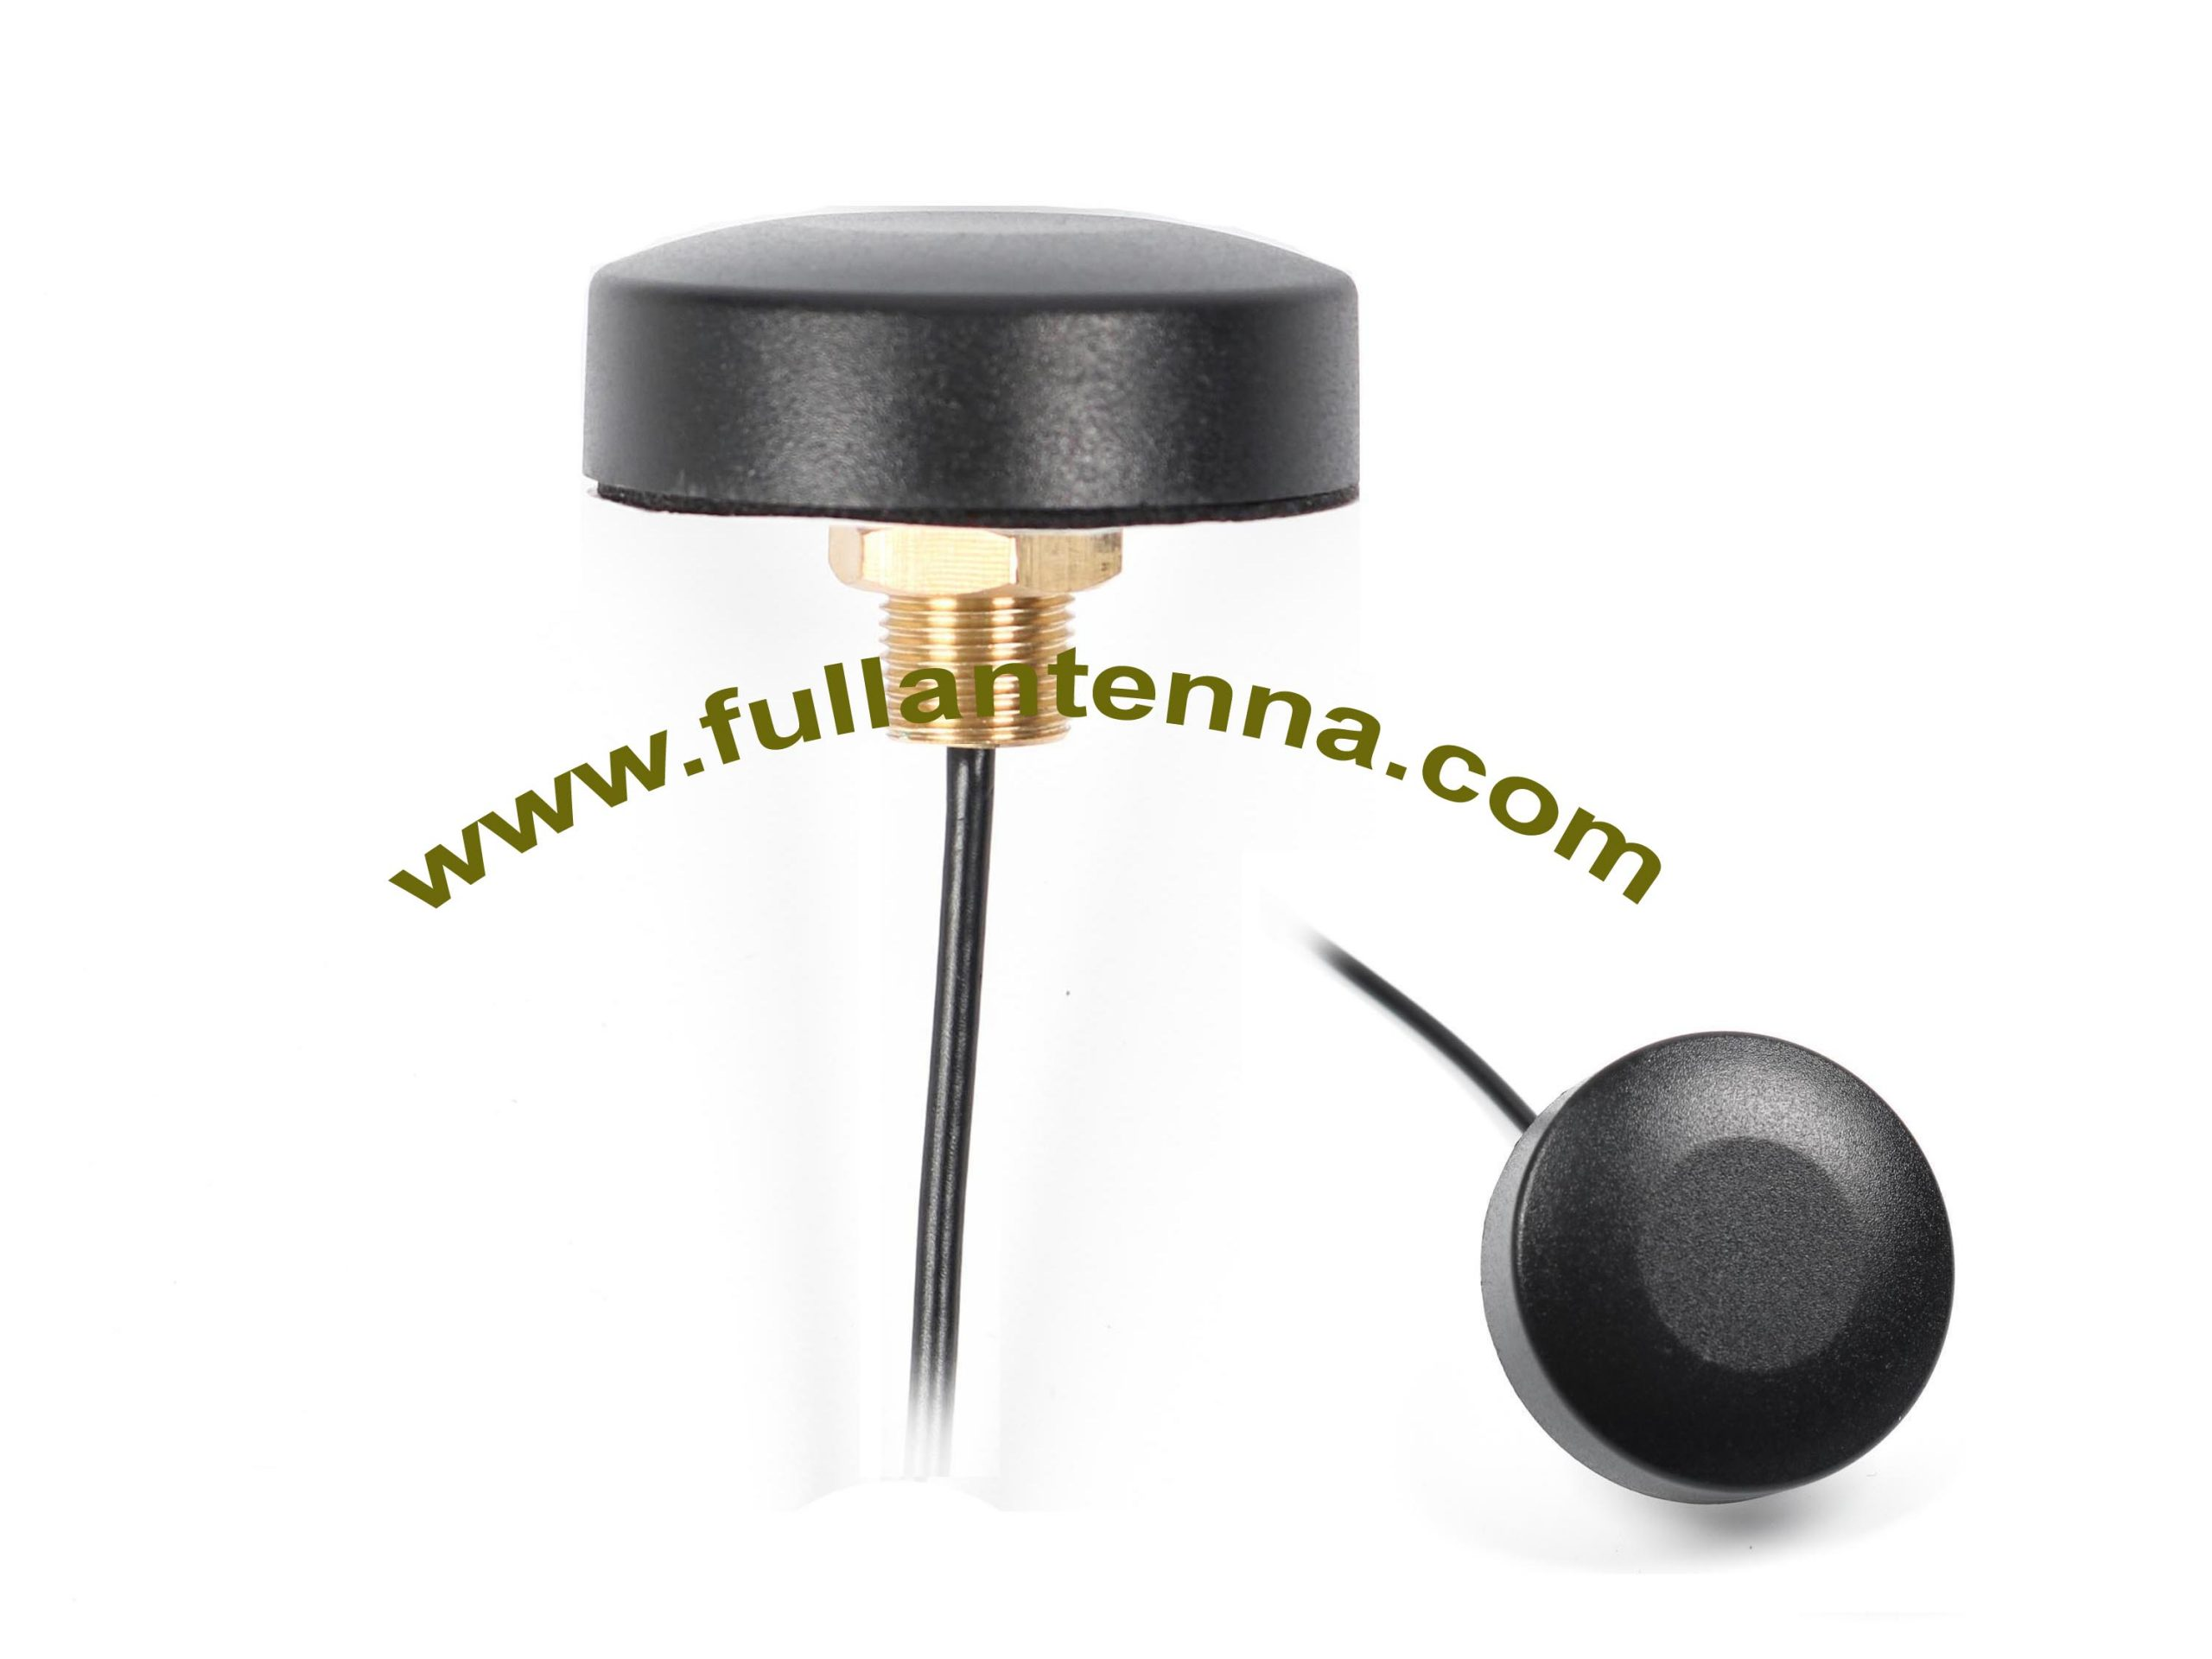 P/N:FA868.10,868Mhz Antenna, small size antenna 868mhz frequency screw mount